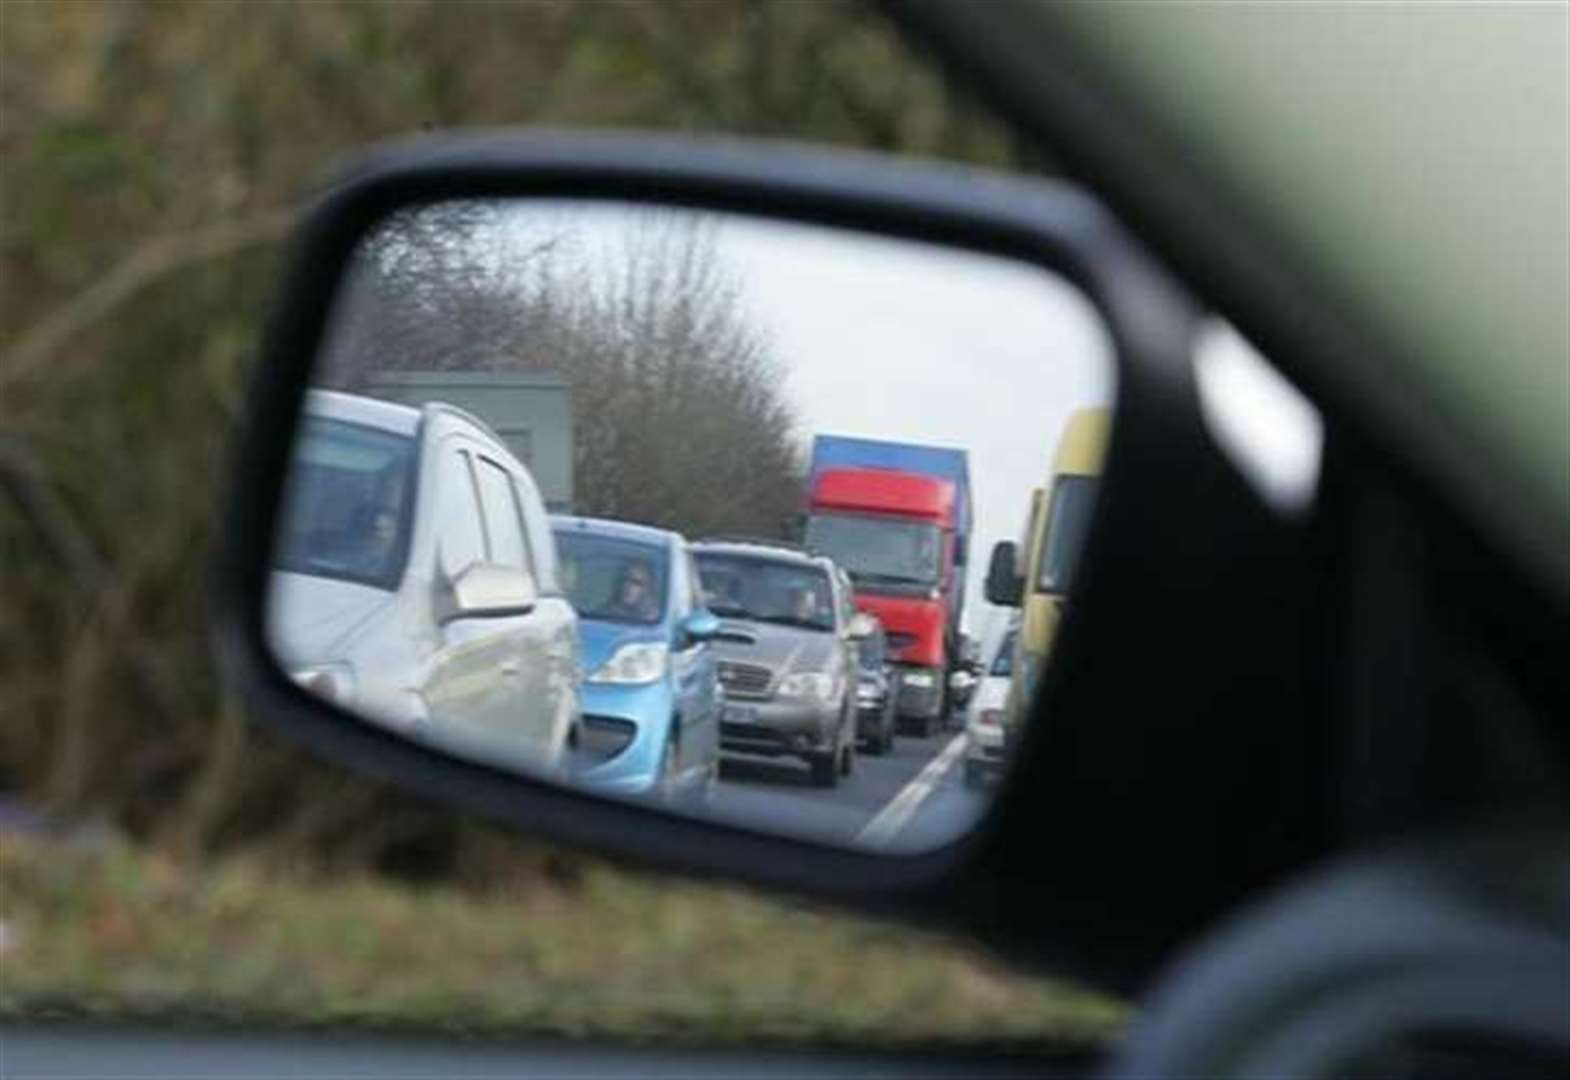 One lane of the A1 near Grantham has been closed